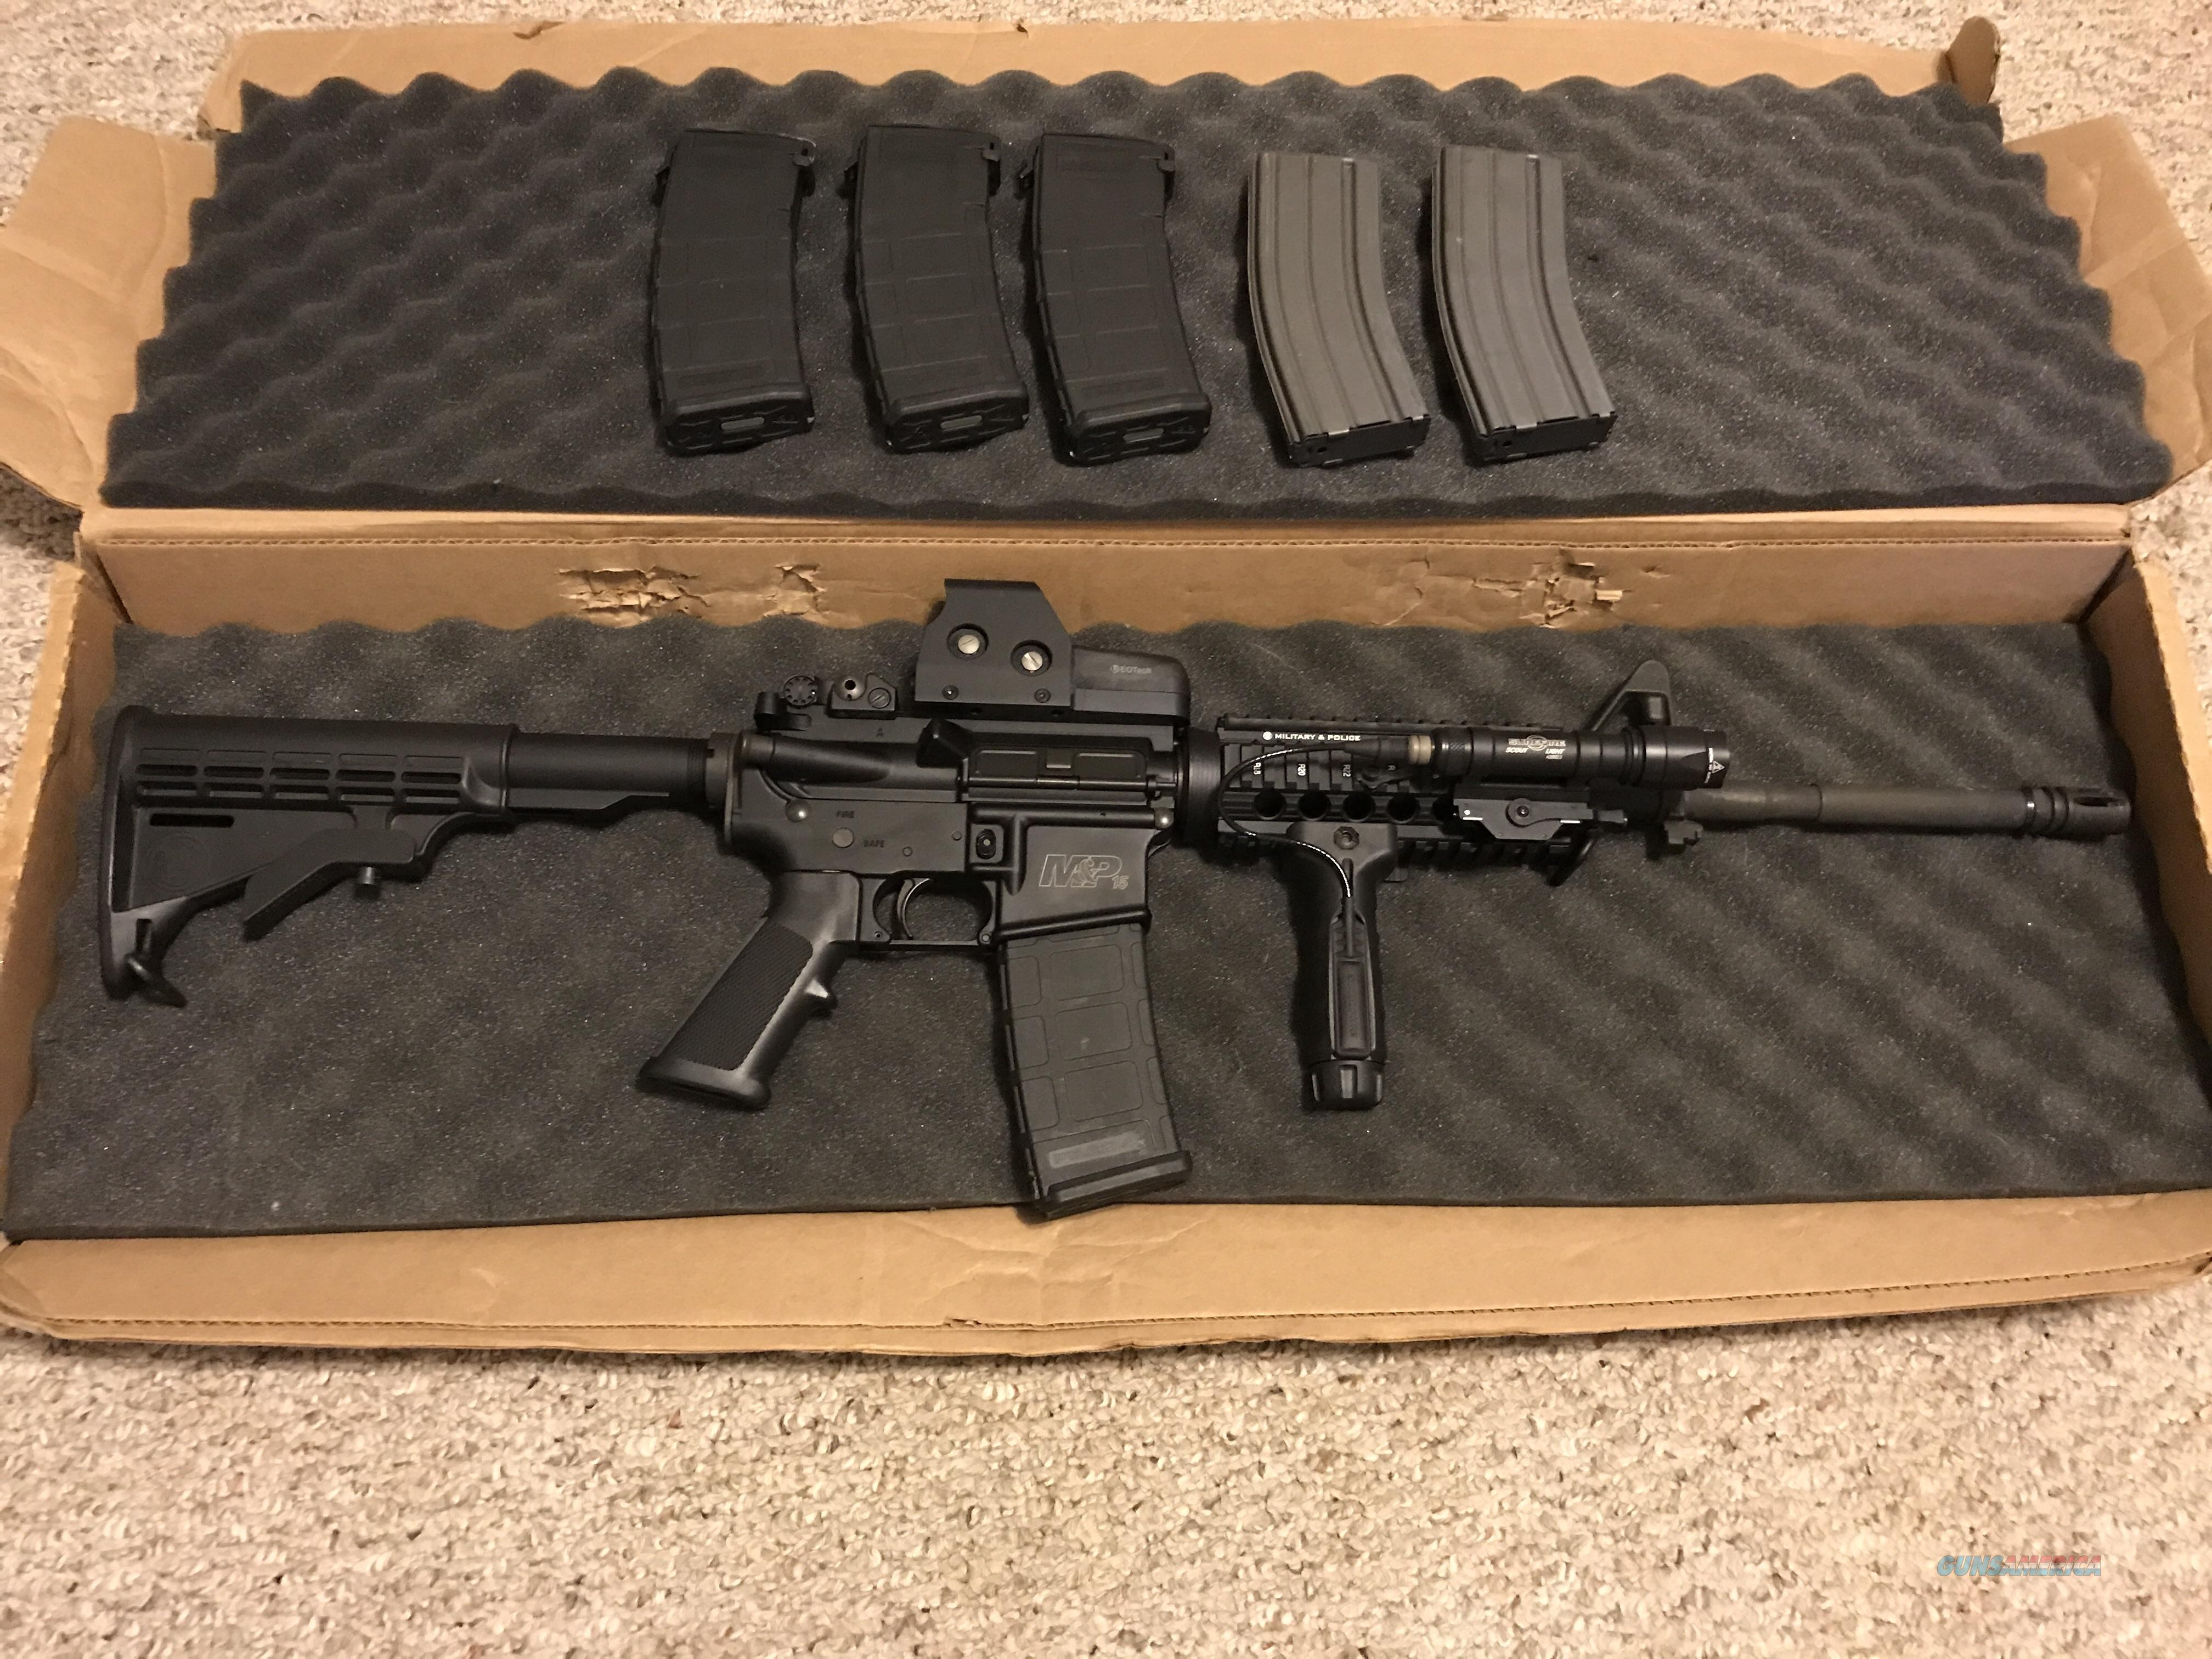 Smith&Wesson M&P 15X 5.56 NATO (with extras)  Guns > Rifles > Smith & Wesson Rifles > M&P